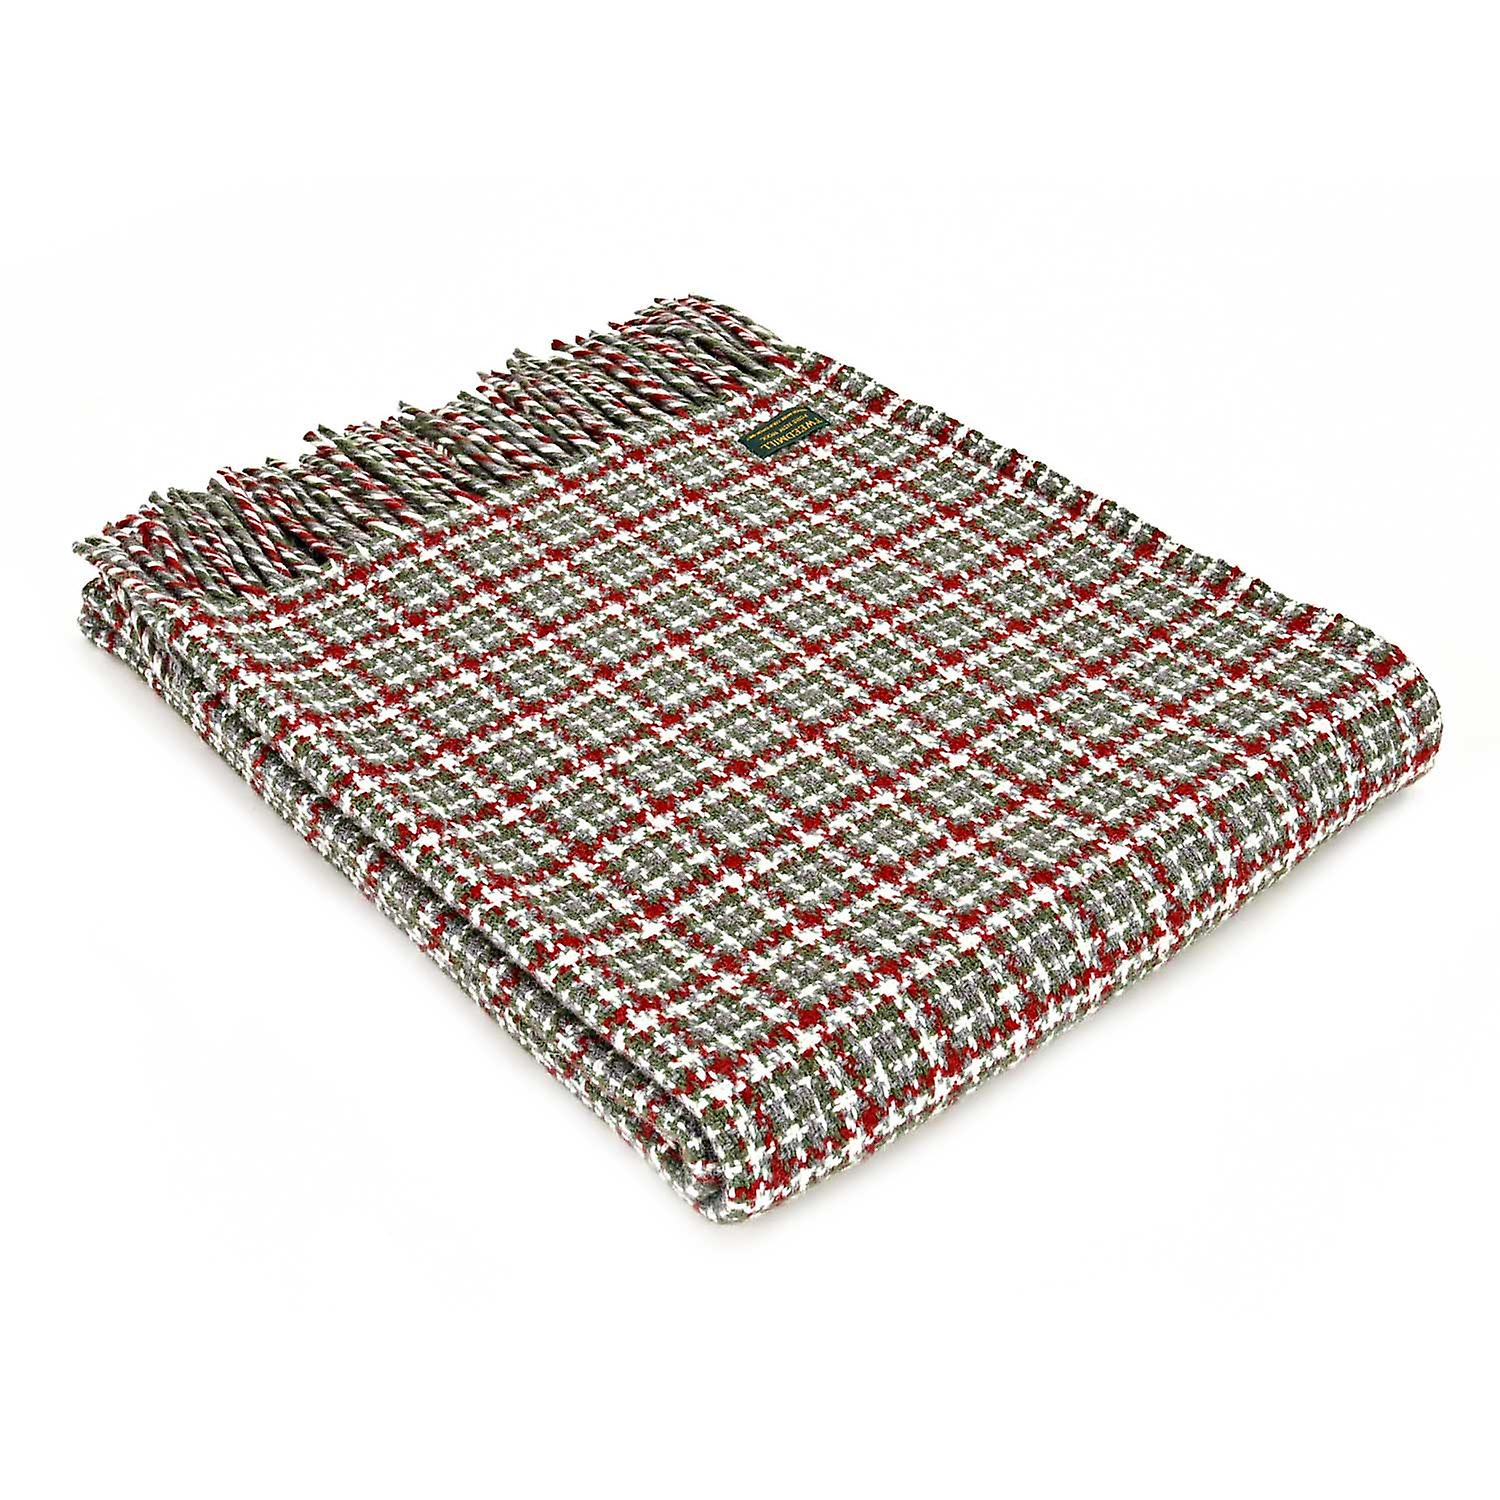 Festival Christmas Pure New Wool Throw / Blanket